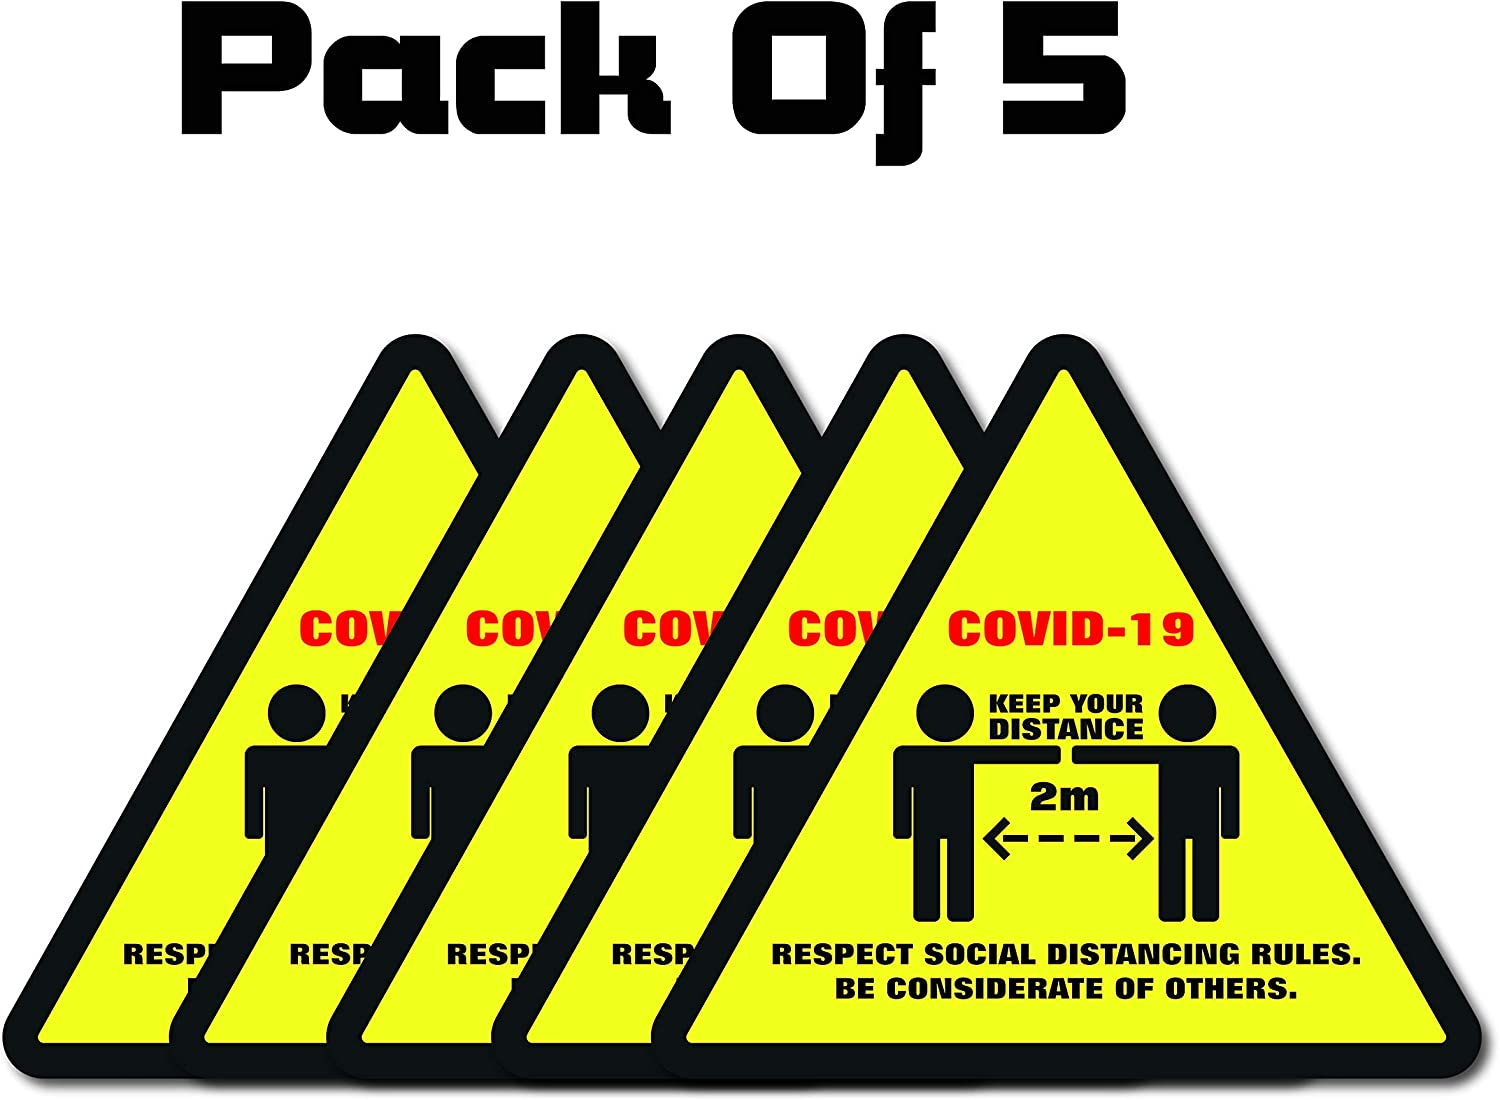 Pack of 5 Triangle COVID-19 Social DISTANCING Rules Self Adhesive Laminated Floor Sticker Signage Covid19 Corona Virus Health /& Safety